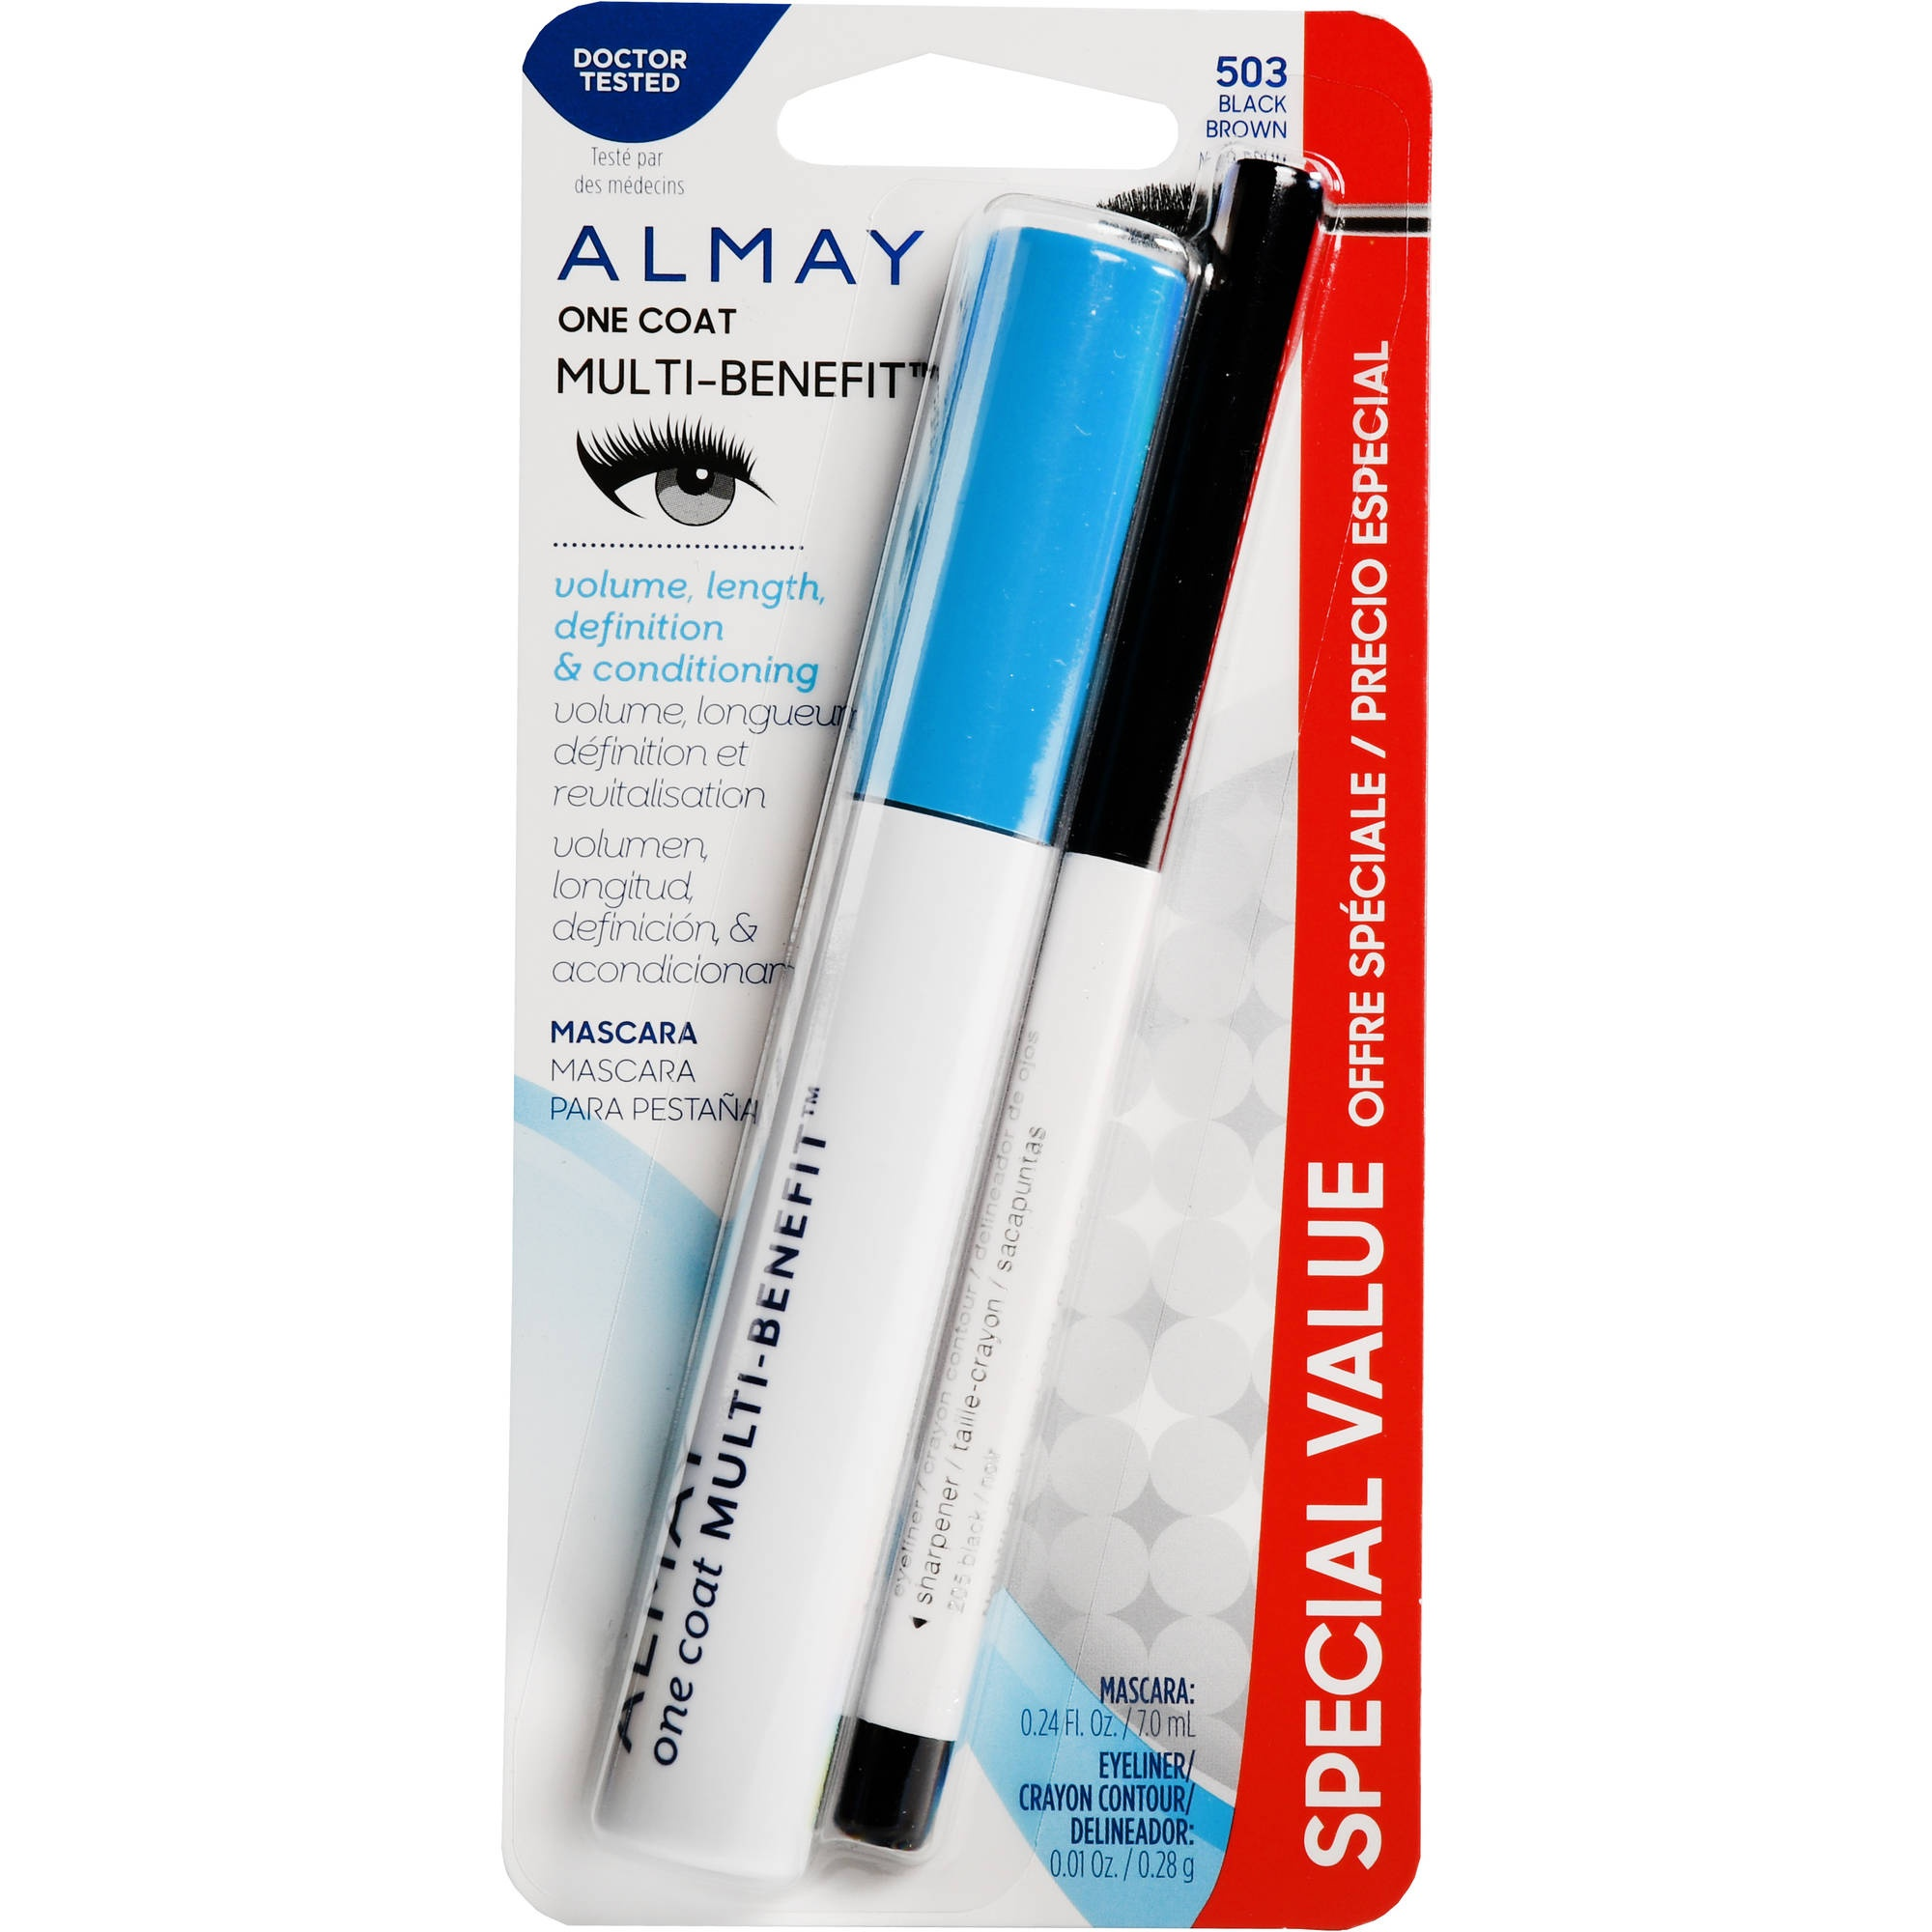 cfd8109b029 Almay Mascara Beauty: Buy Online from Fishpond.co.nz